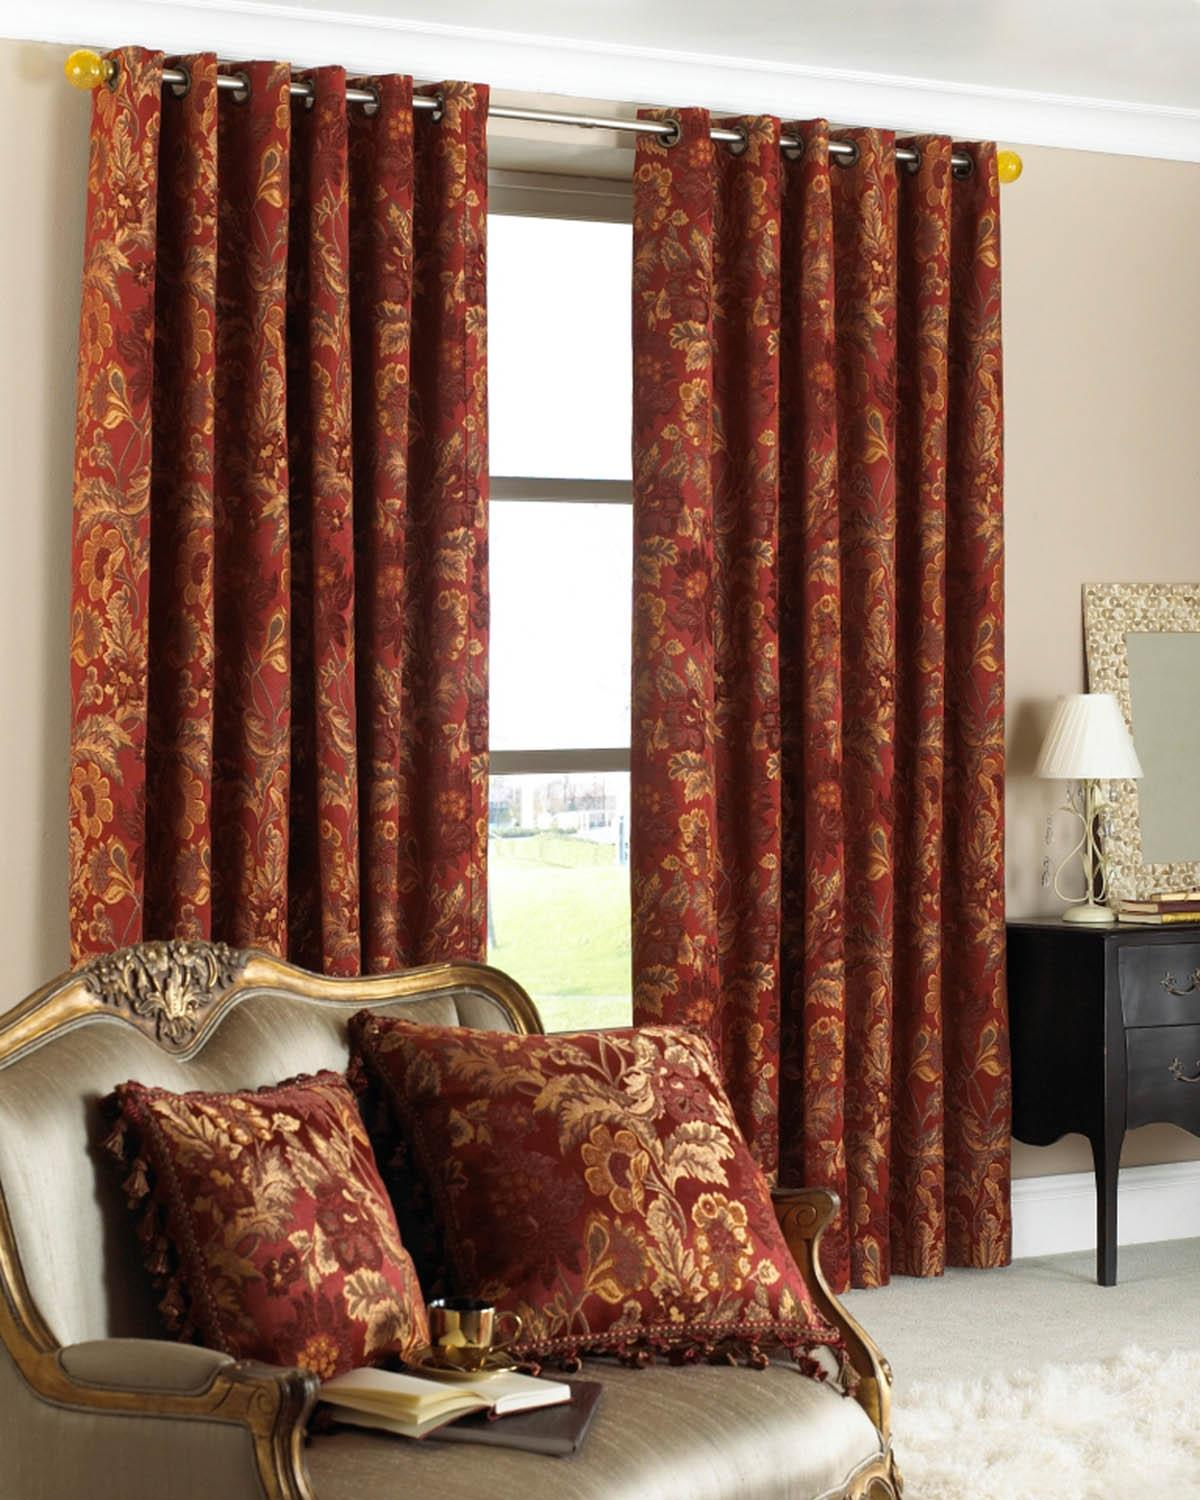 Sloane Ready Made Eyelet Curtains Rust Free UK Delivery